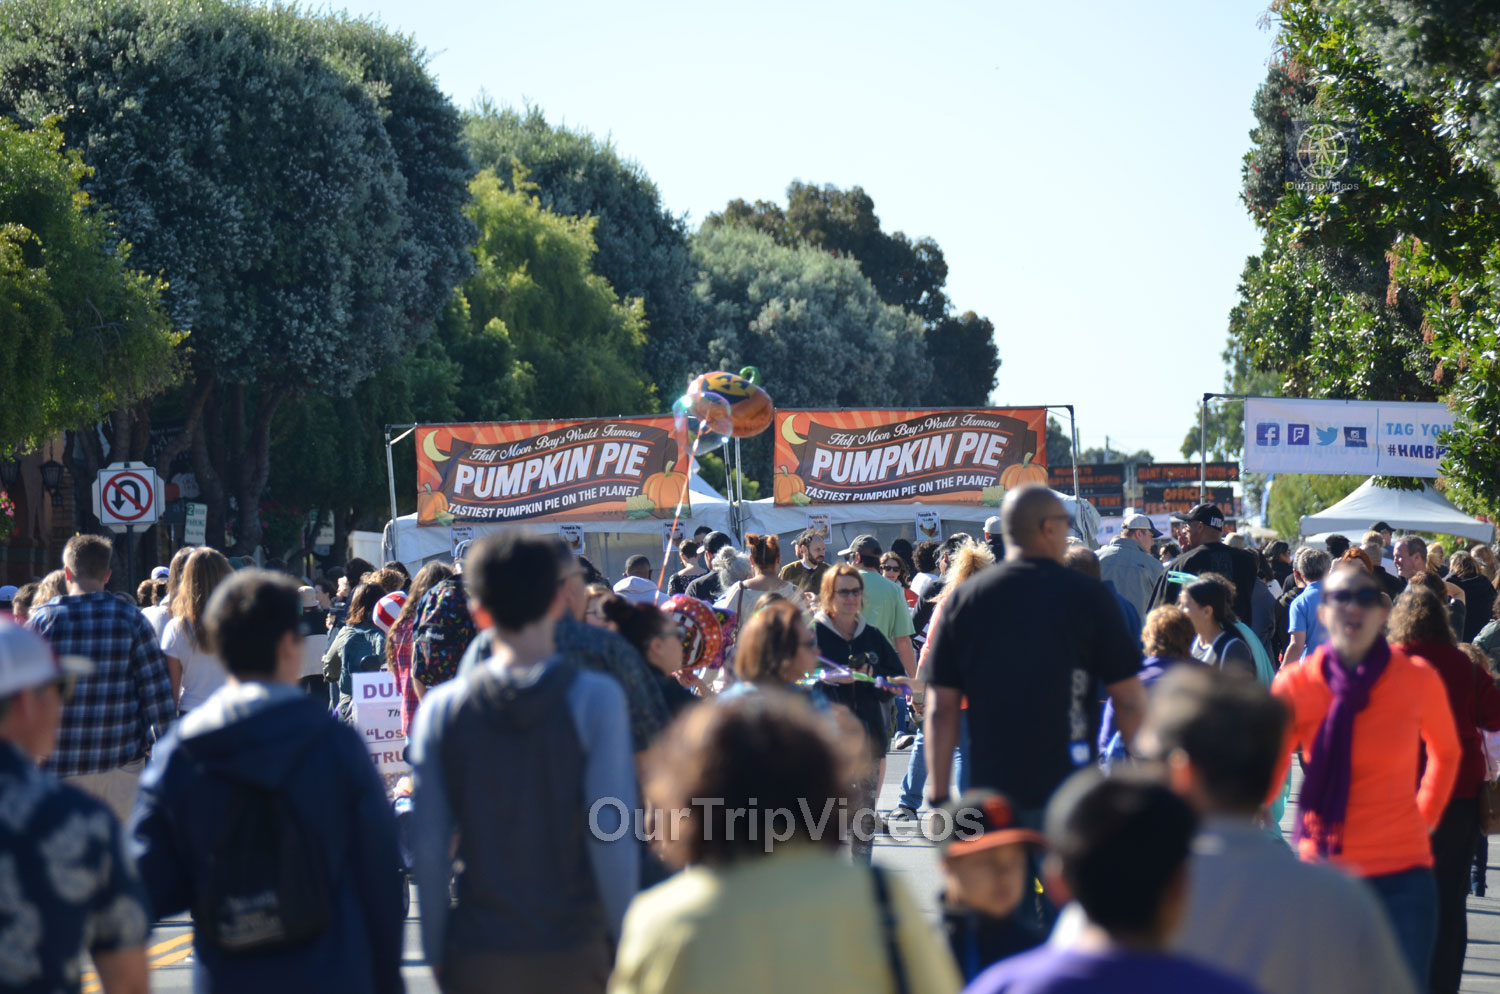 Art and Pumpkin Festival(Parade), Half Moon Bay, CA, USA - Picture 5 of 25